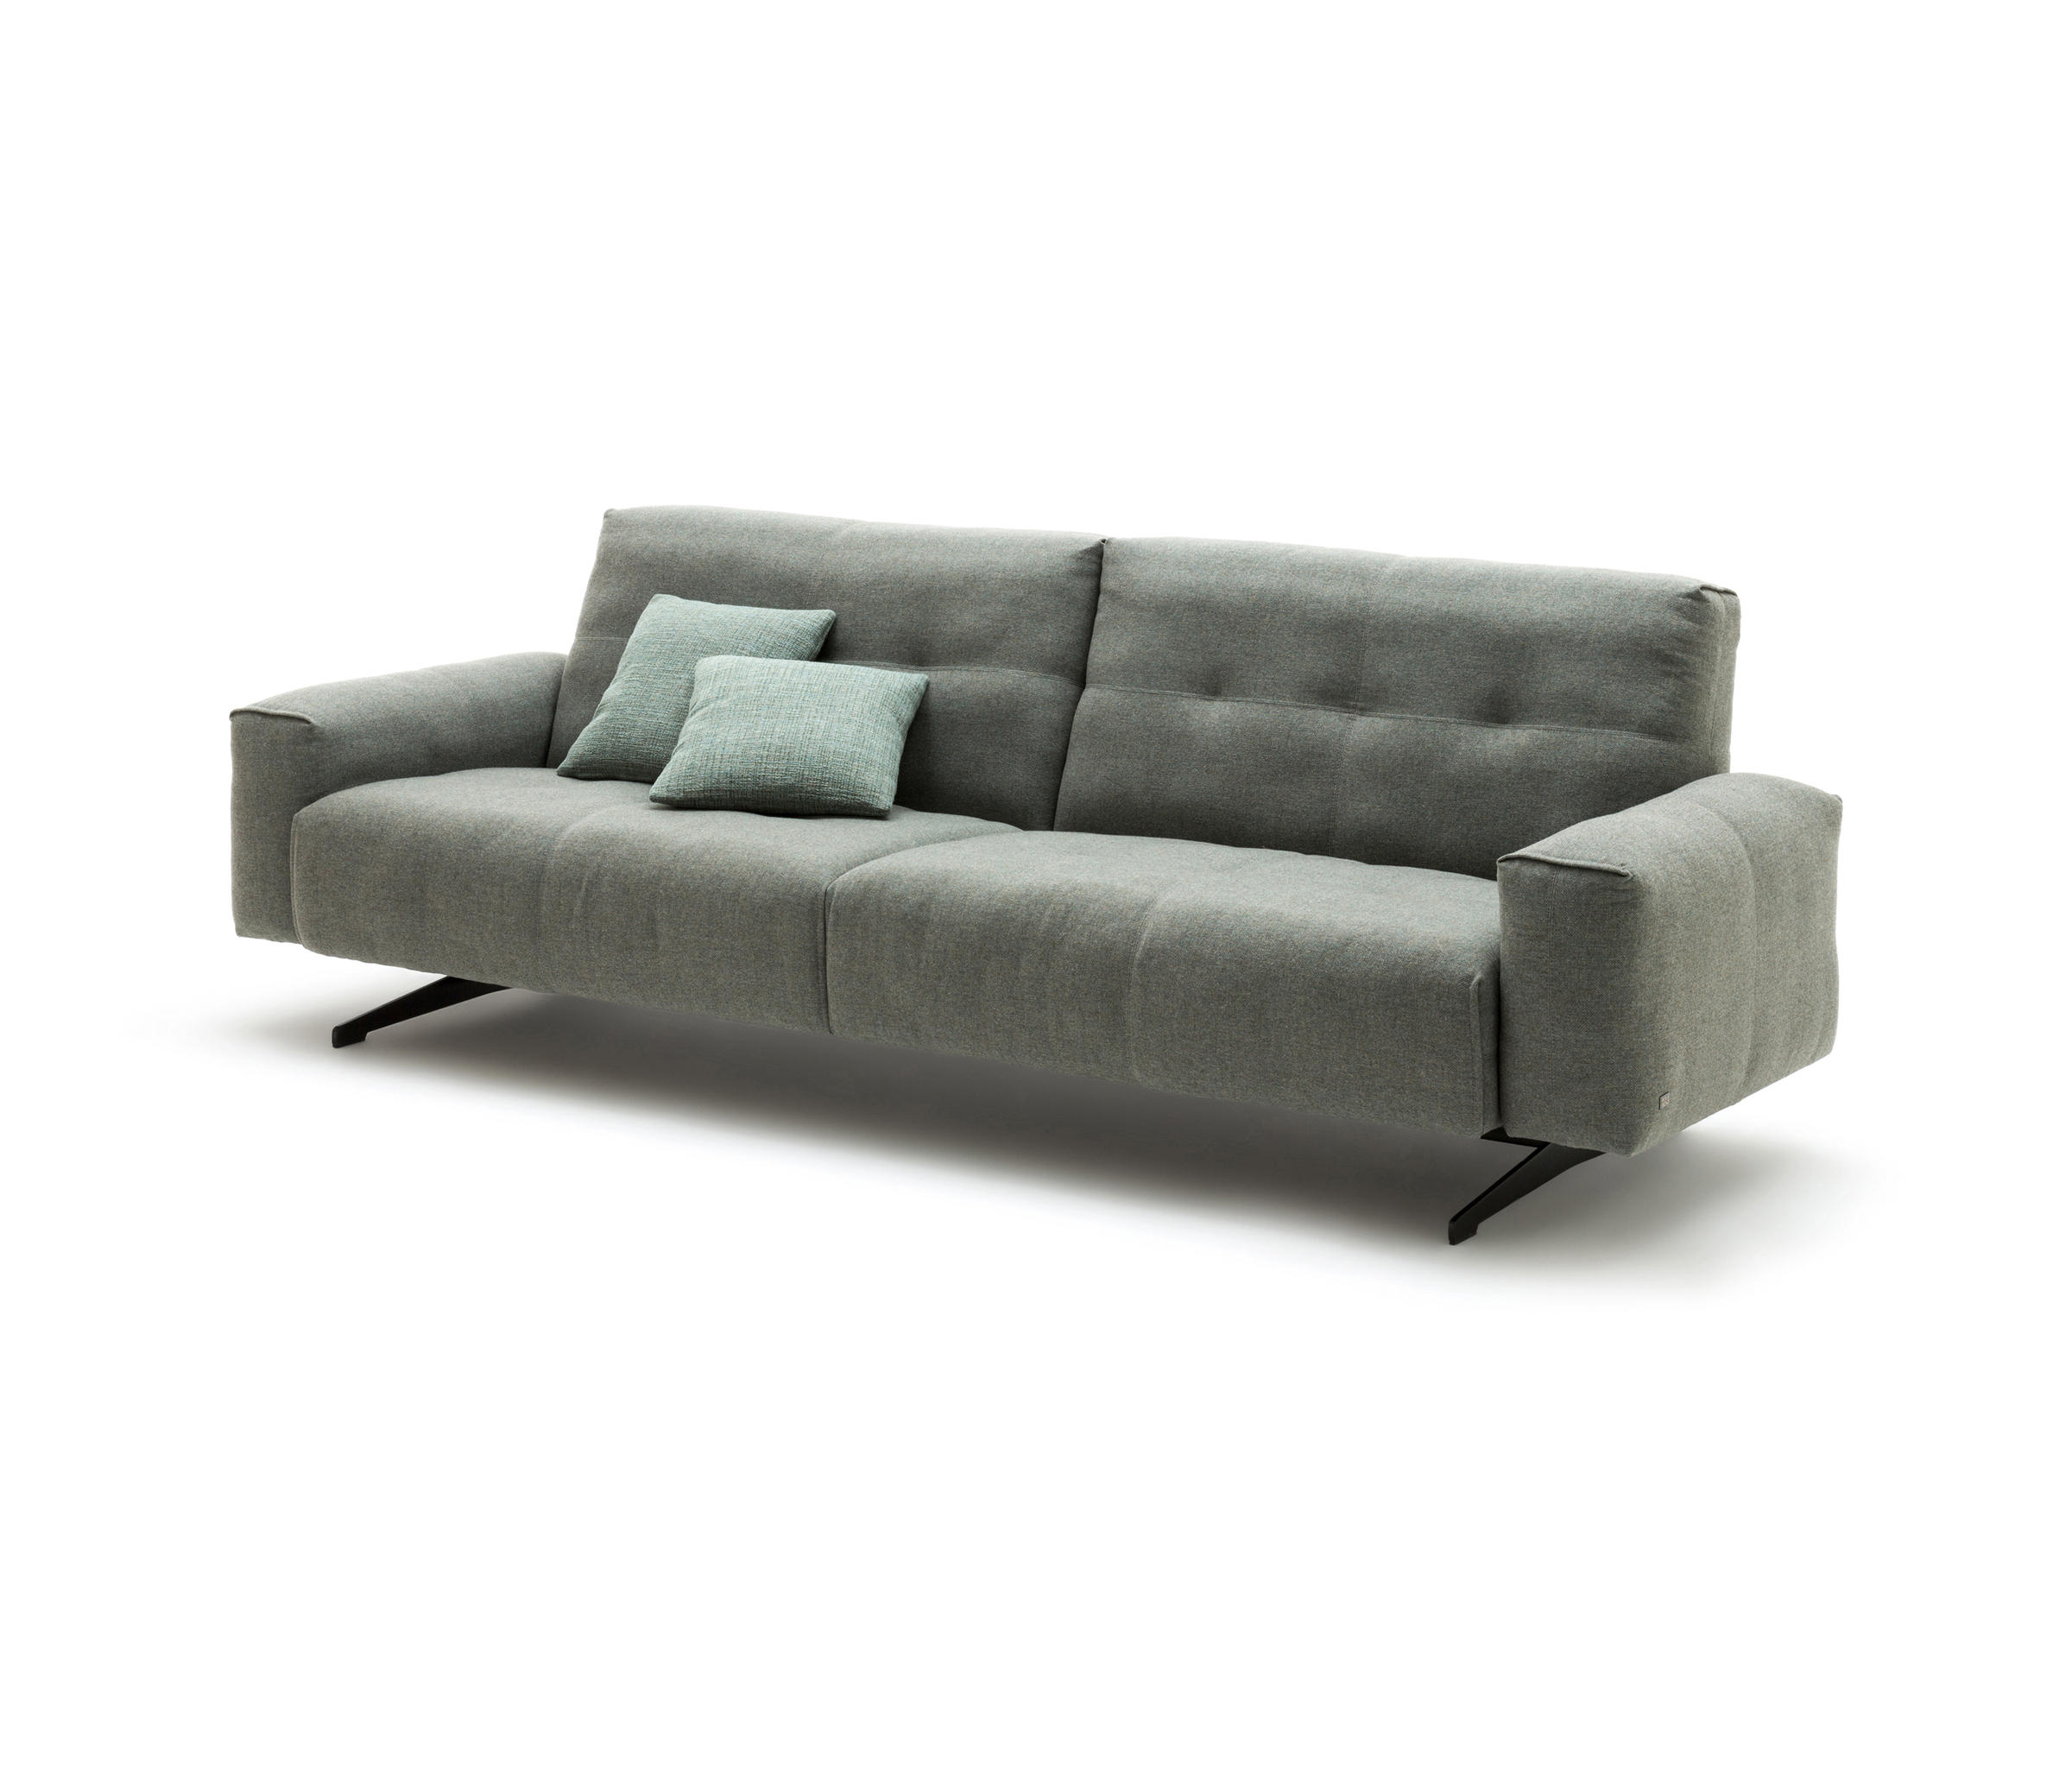 Rolf benz 50 loungesofas von rolf benz architonic for Rolf benz katalog